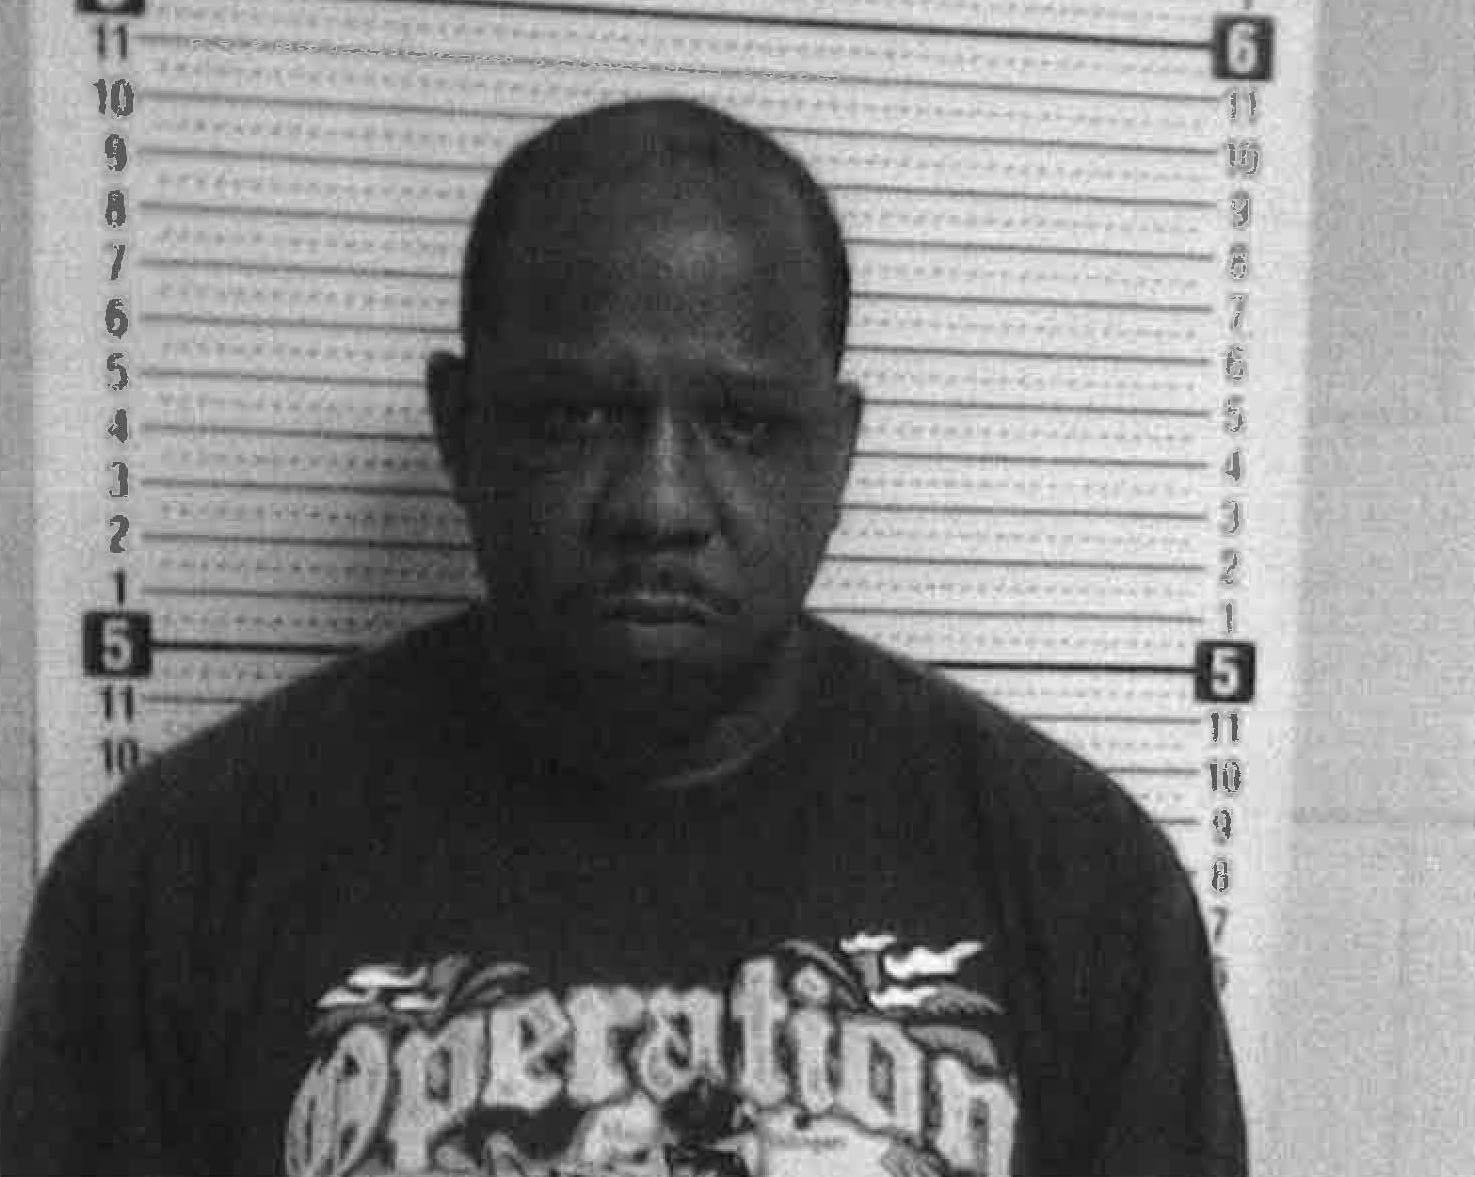 Covington man among 9 arrested in Conyers pandering sting - The